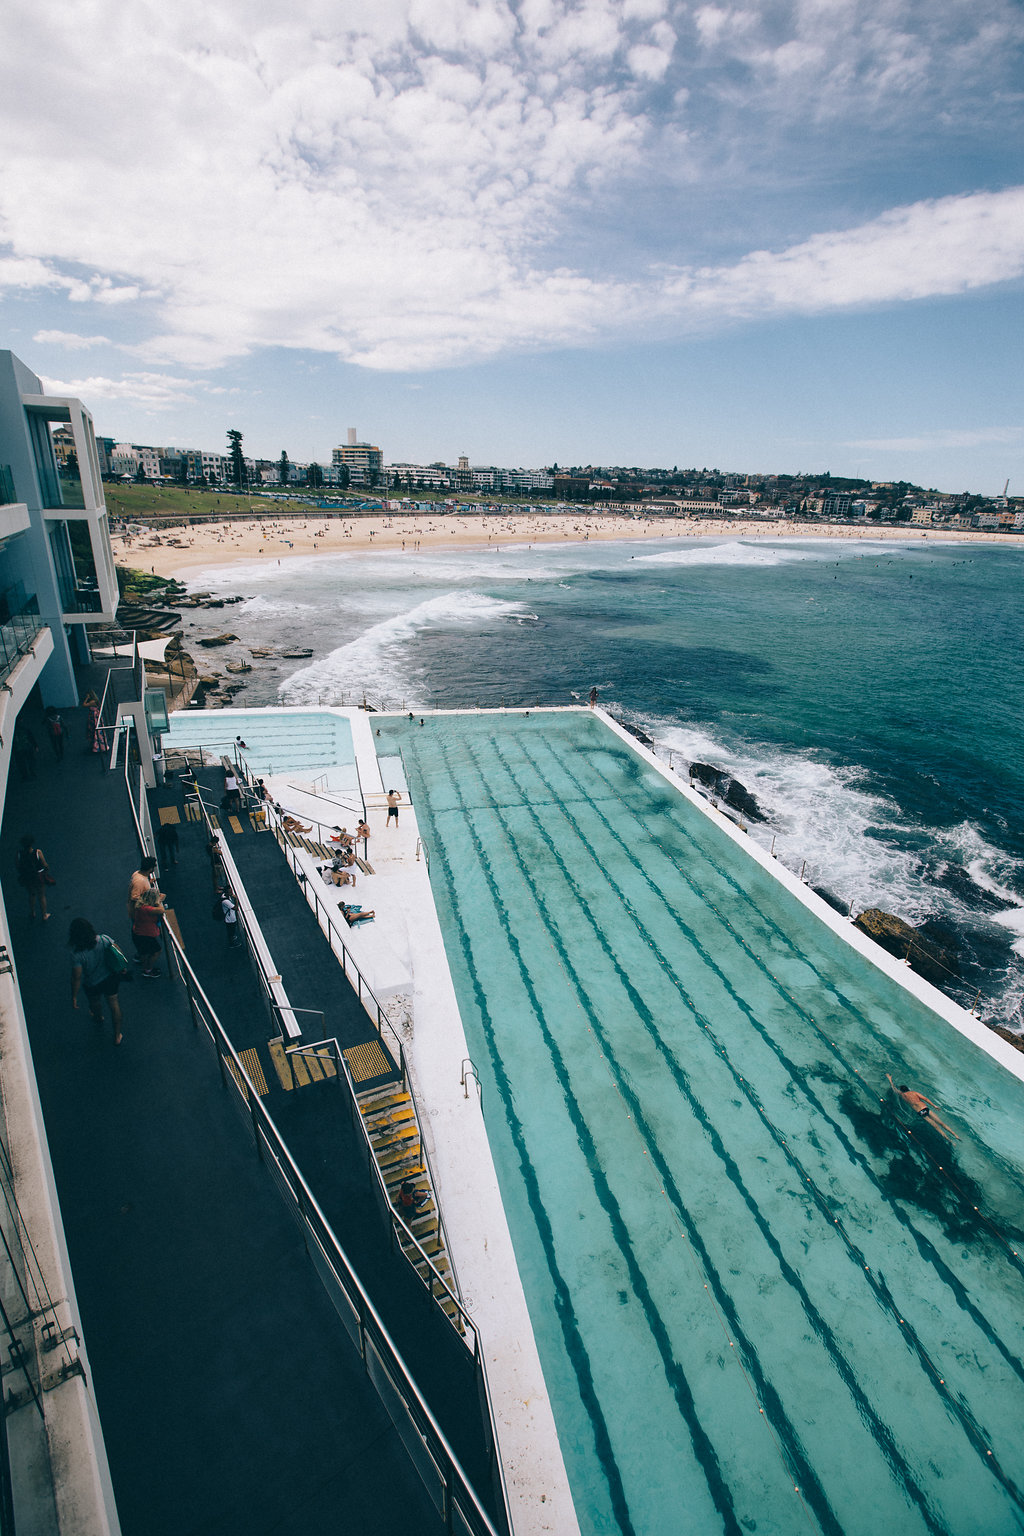 Bondi Beach Icebergs swimming pool Sydney